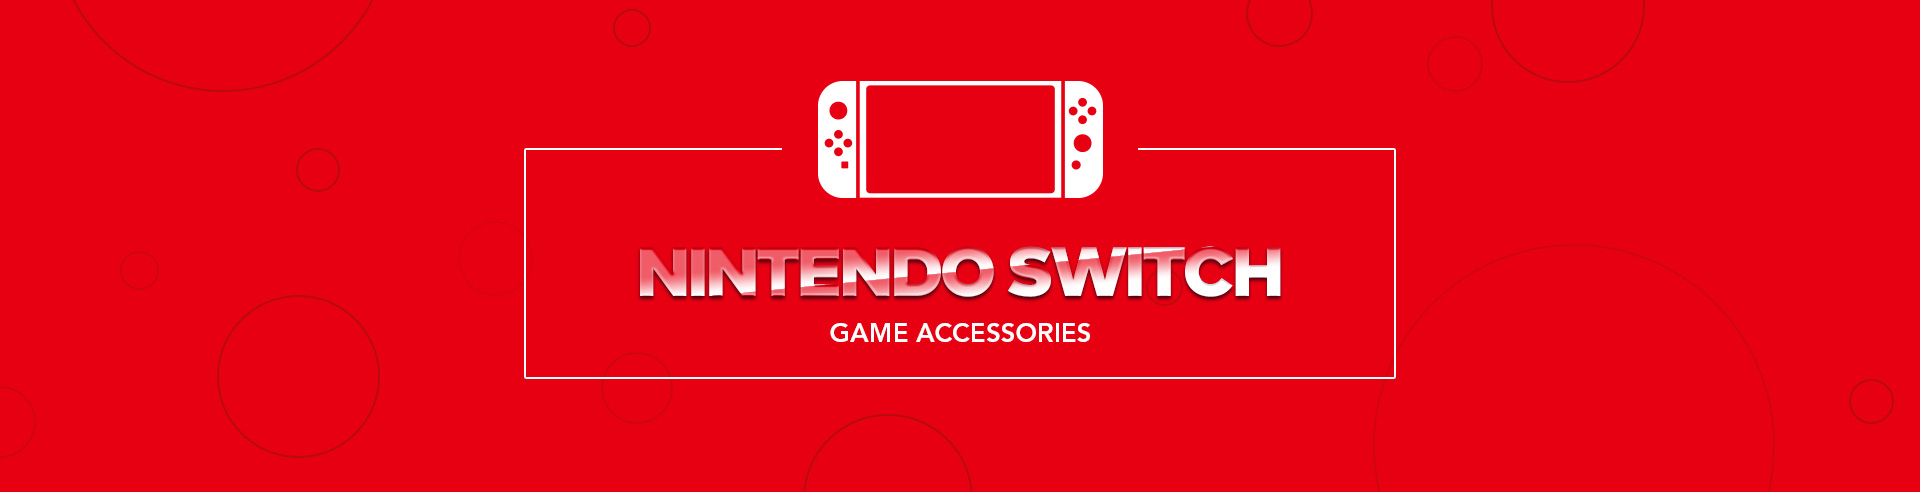 Nintendo Game Accessories